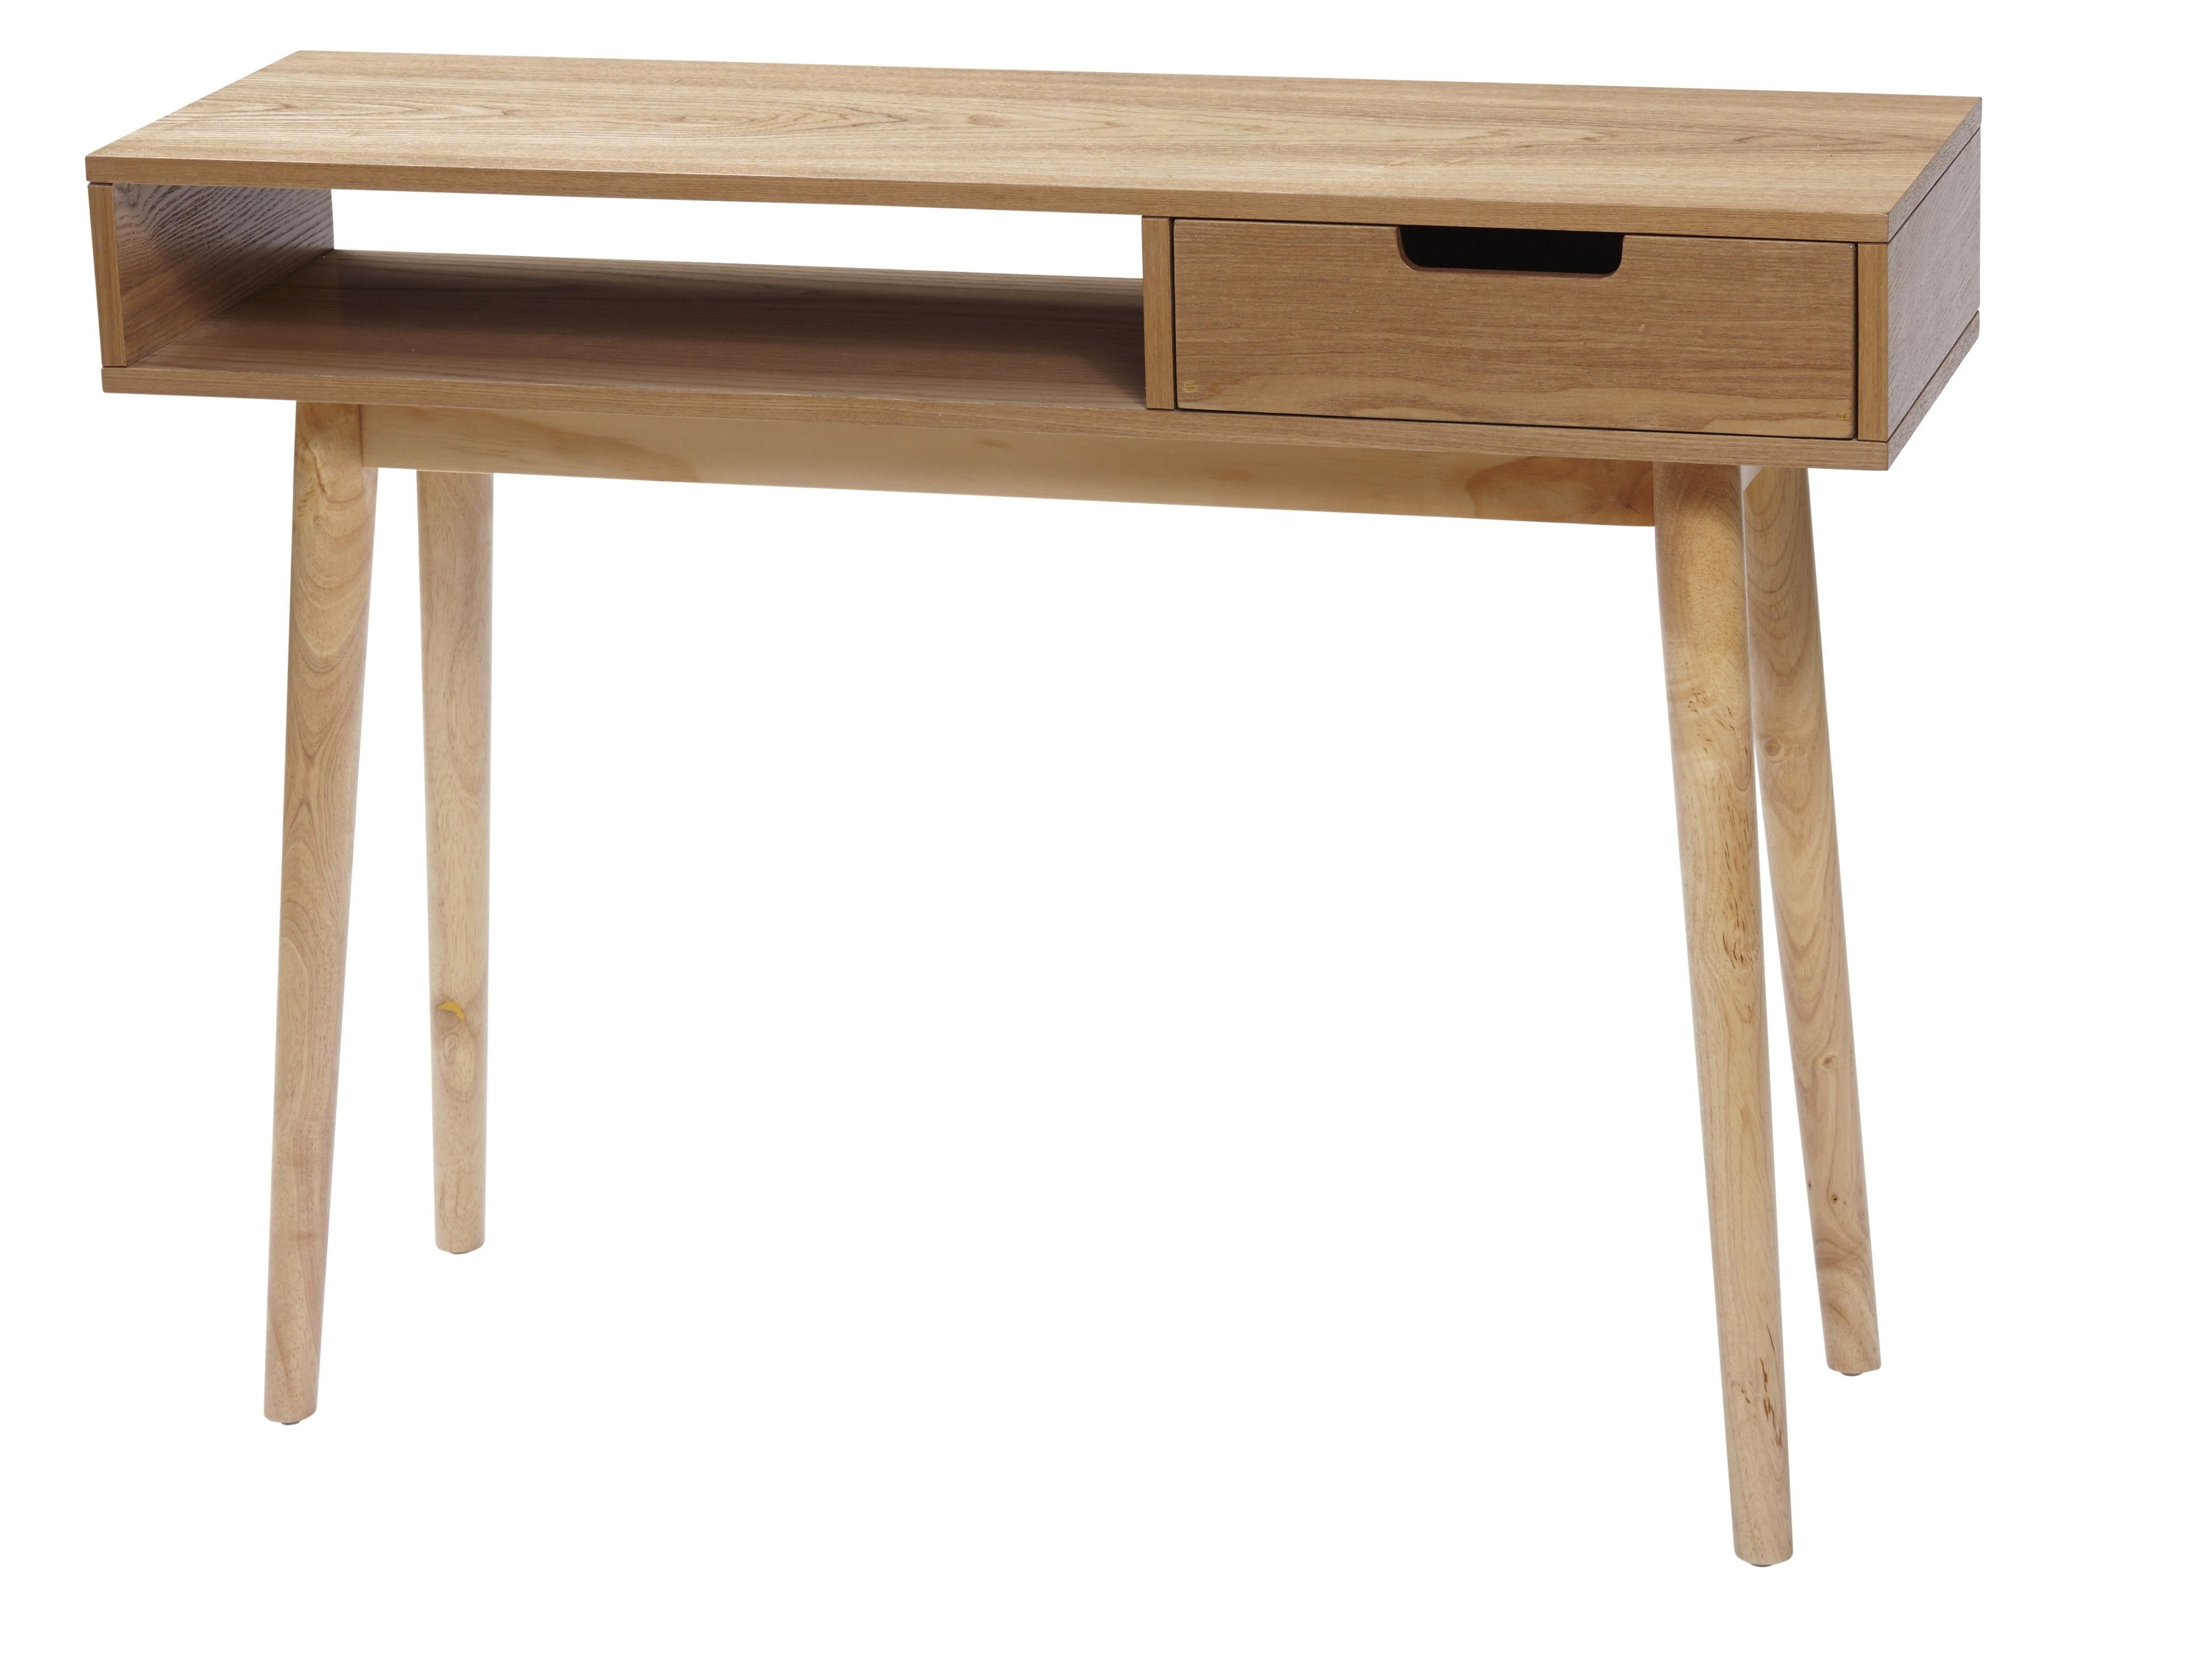 Silla console table furniture ideas pinterest contemporary silla console table geotapseo Images